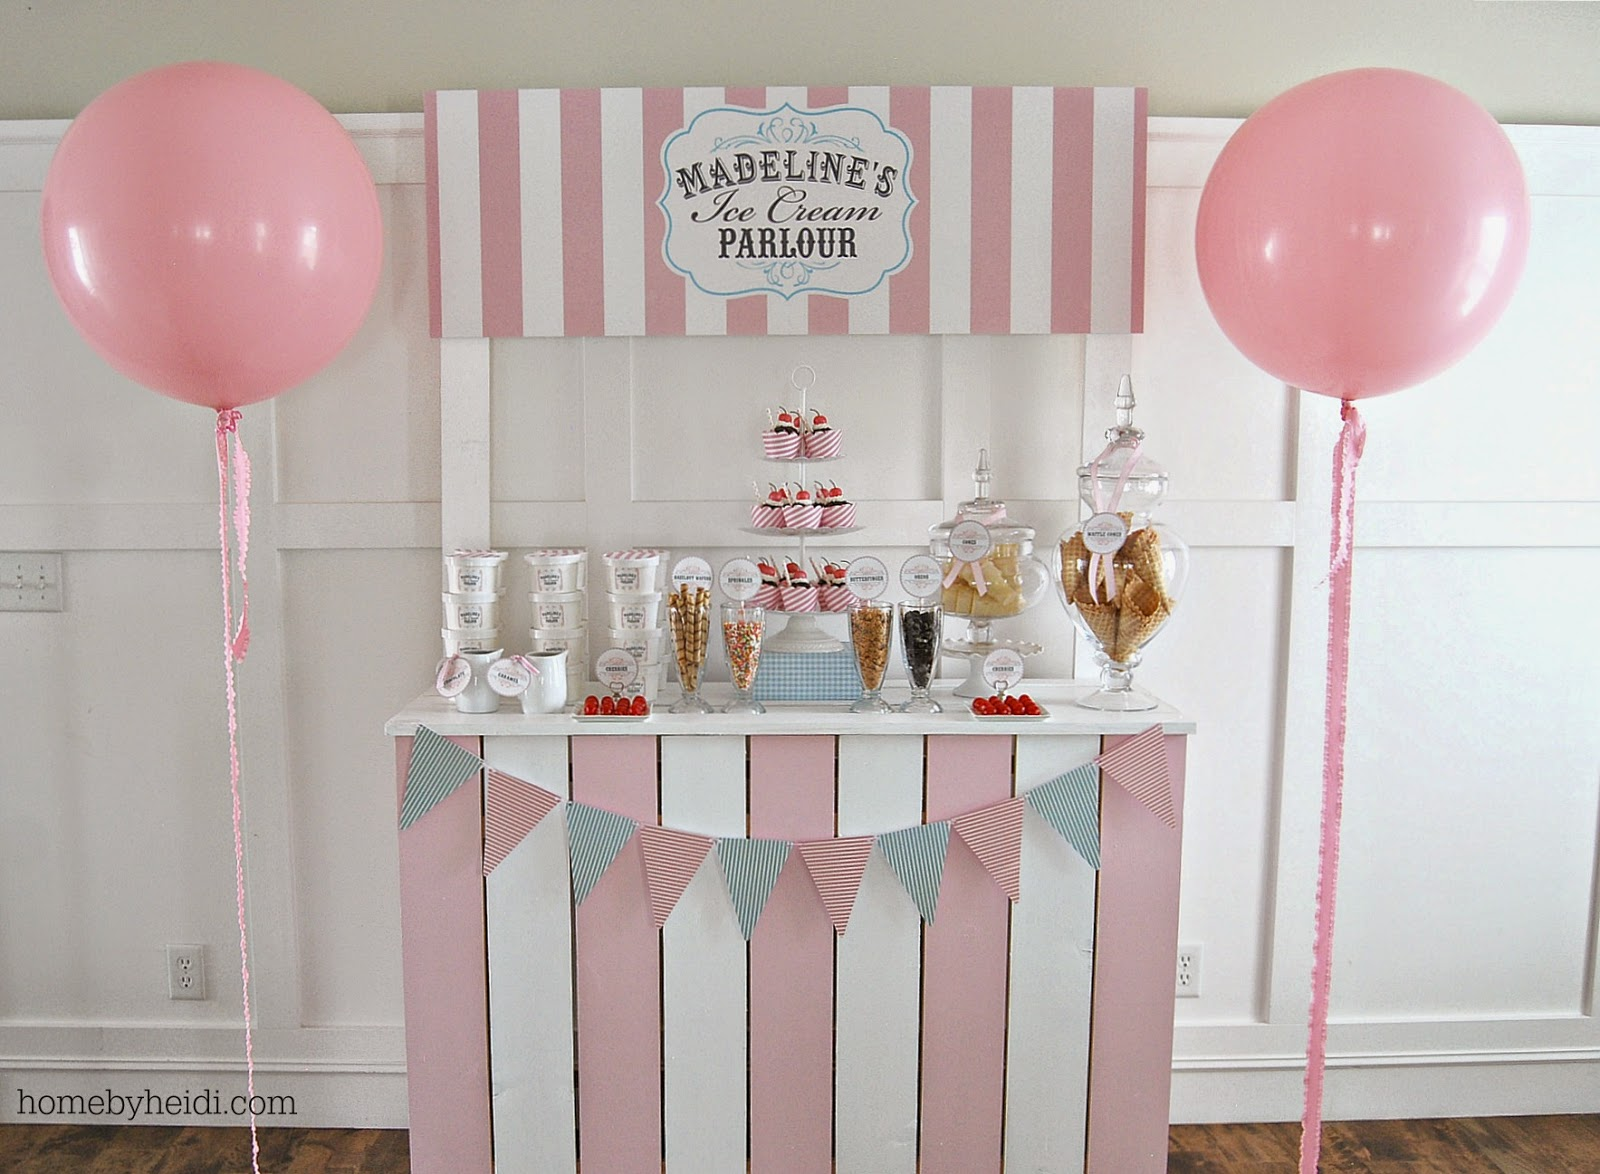 http://sweetlychicevents.com/wp-content/uploads/2015/02/Ice-Cream-Parlor-Party.jpg